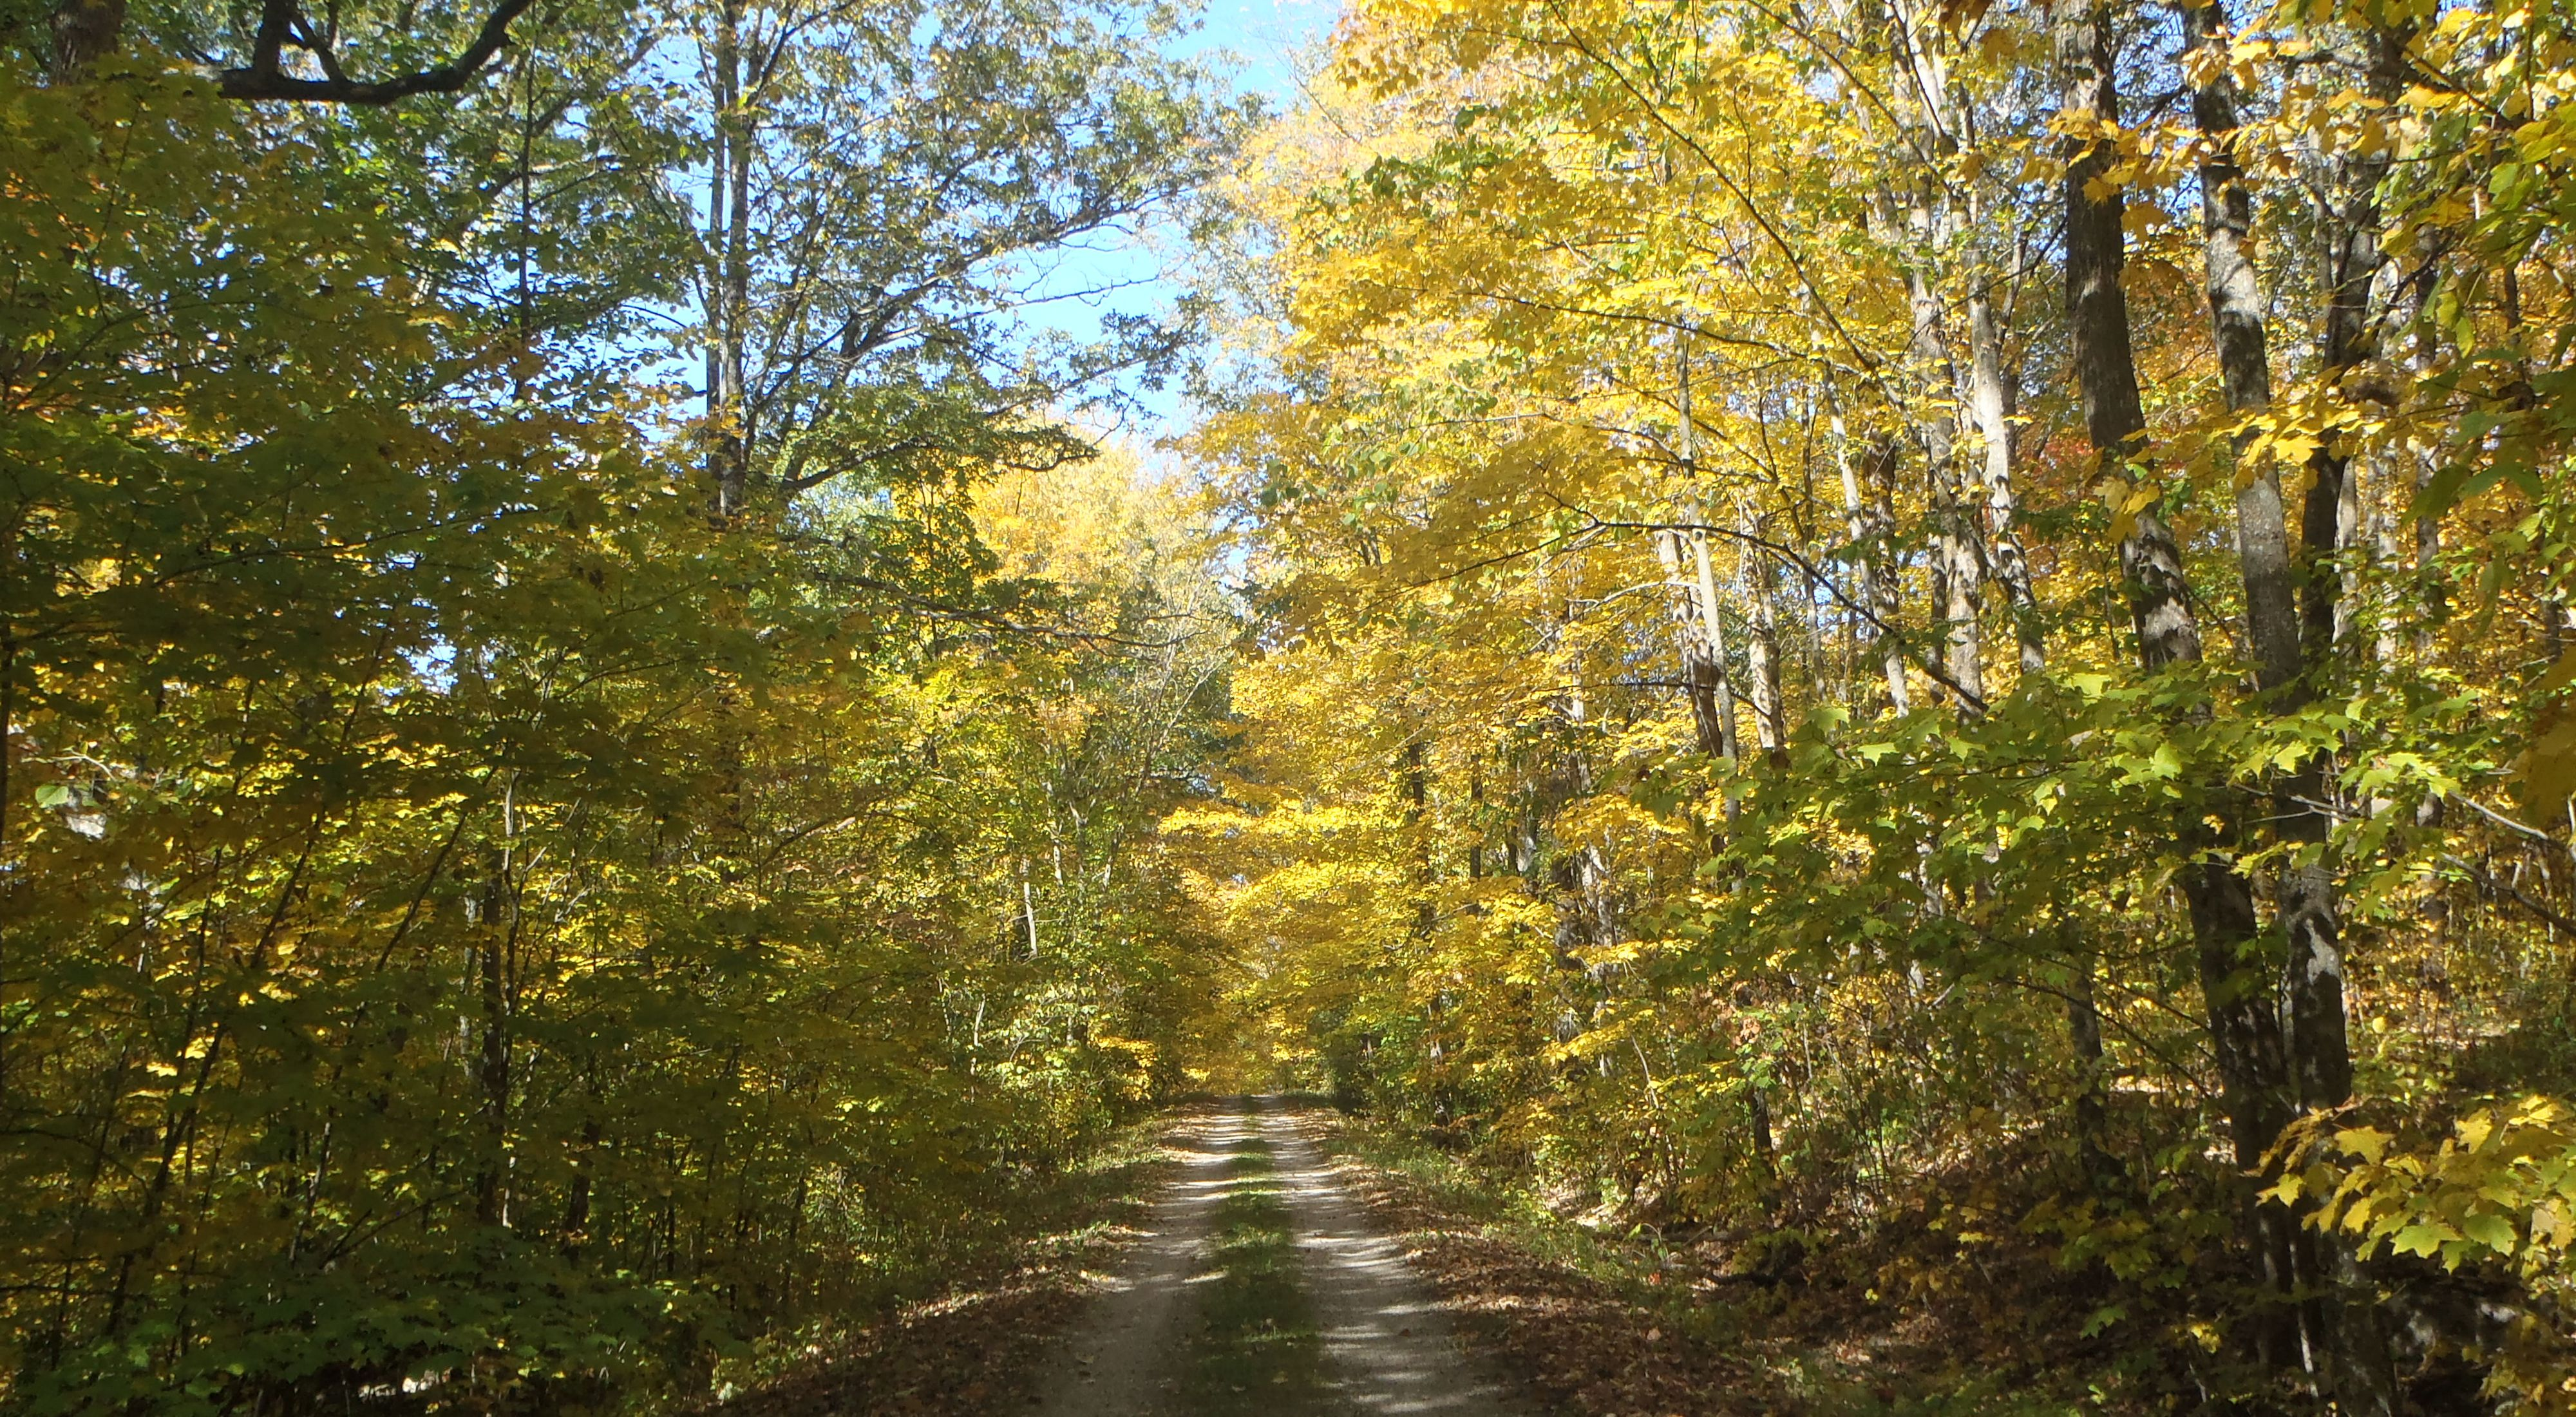 Unpaved road winds through a forest ablaze with fall color in Wisconsin.